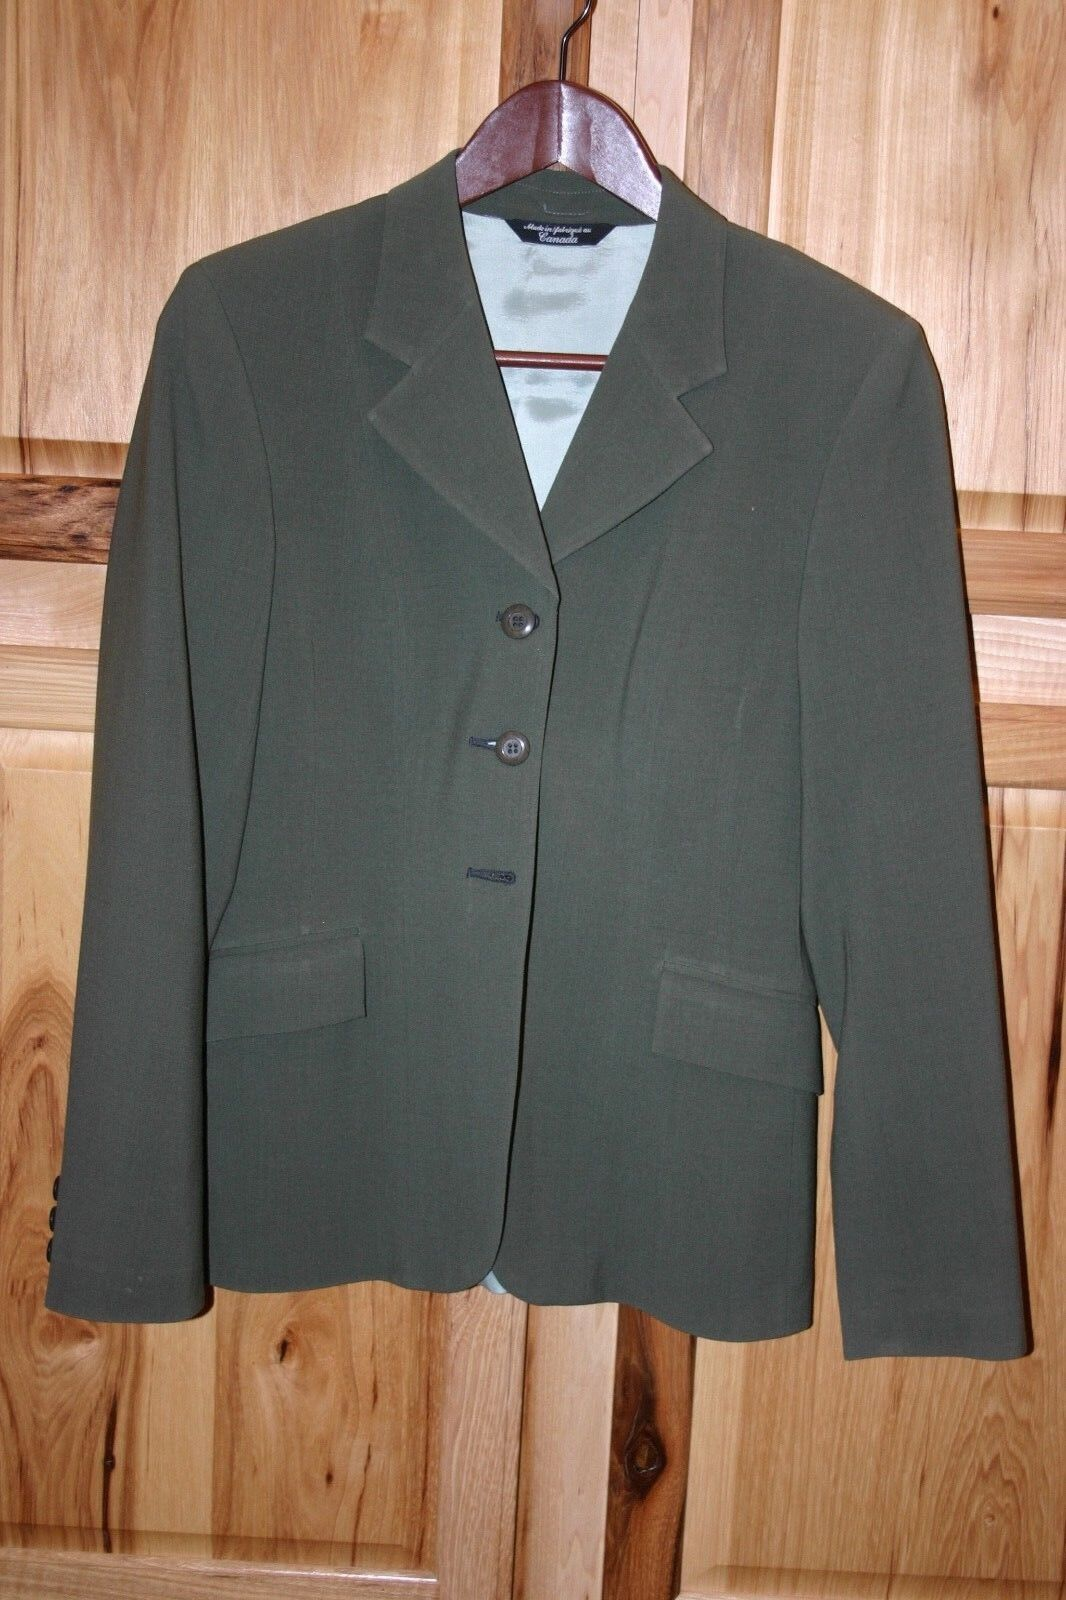 Grand Prix Extreme Stretch English Hunt Show Coat  Olive Green 10R  Reduced  save up to 70% discount